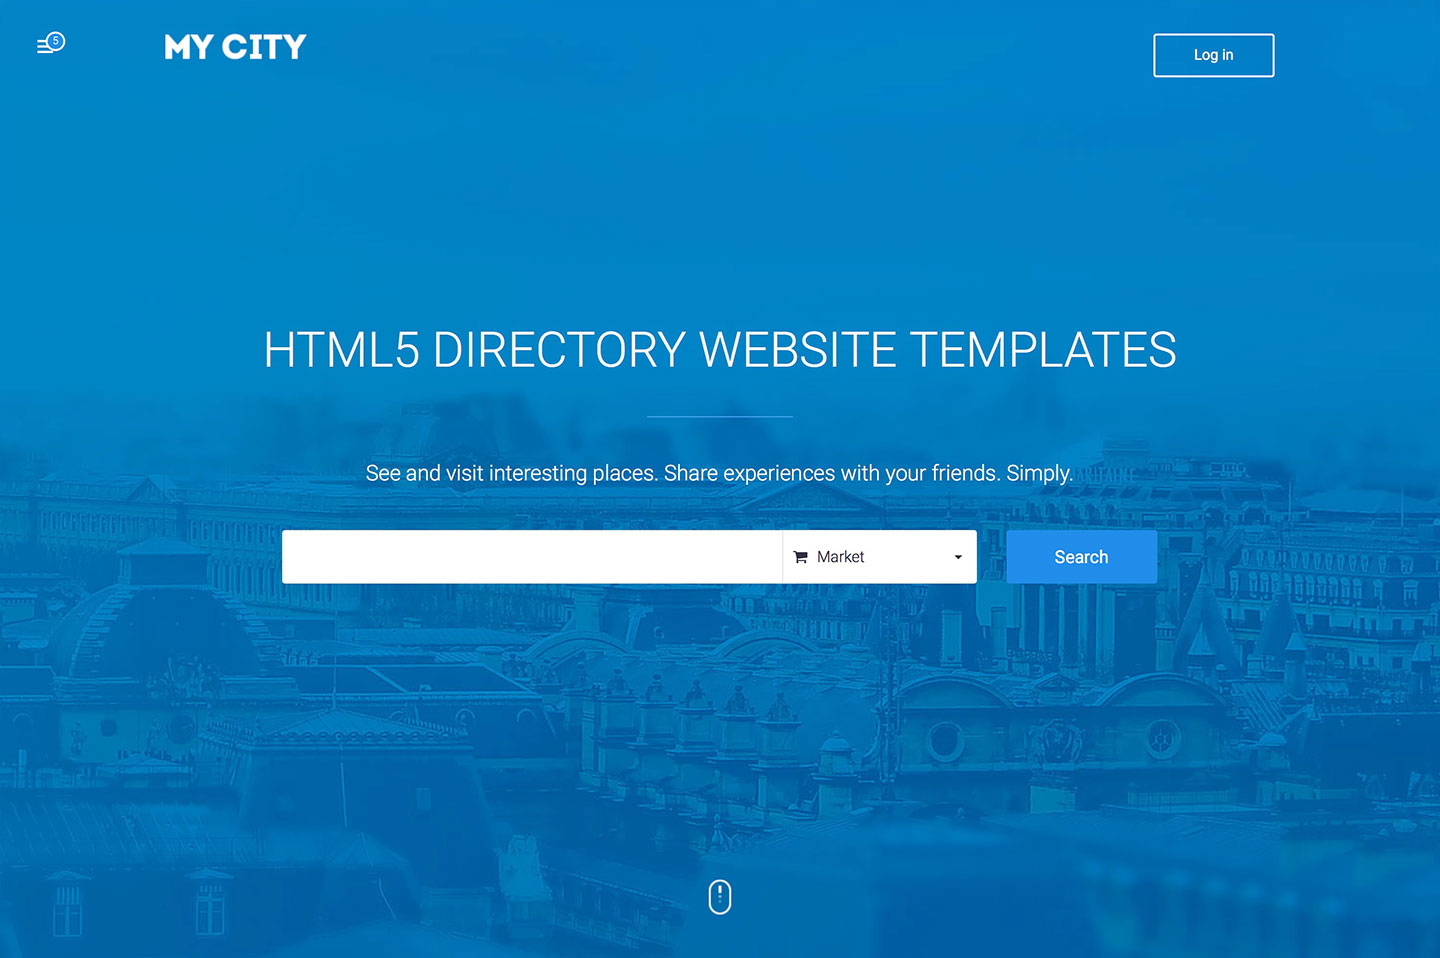 23 top responsive html5 directory website templates 2018 colorlib top 23 responsive html5 directory website templates for business directories 2018 cheaphphosting Image collections